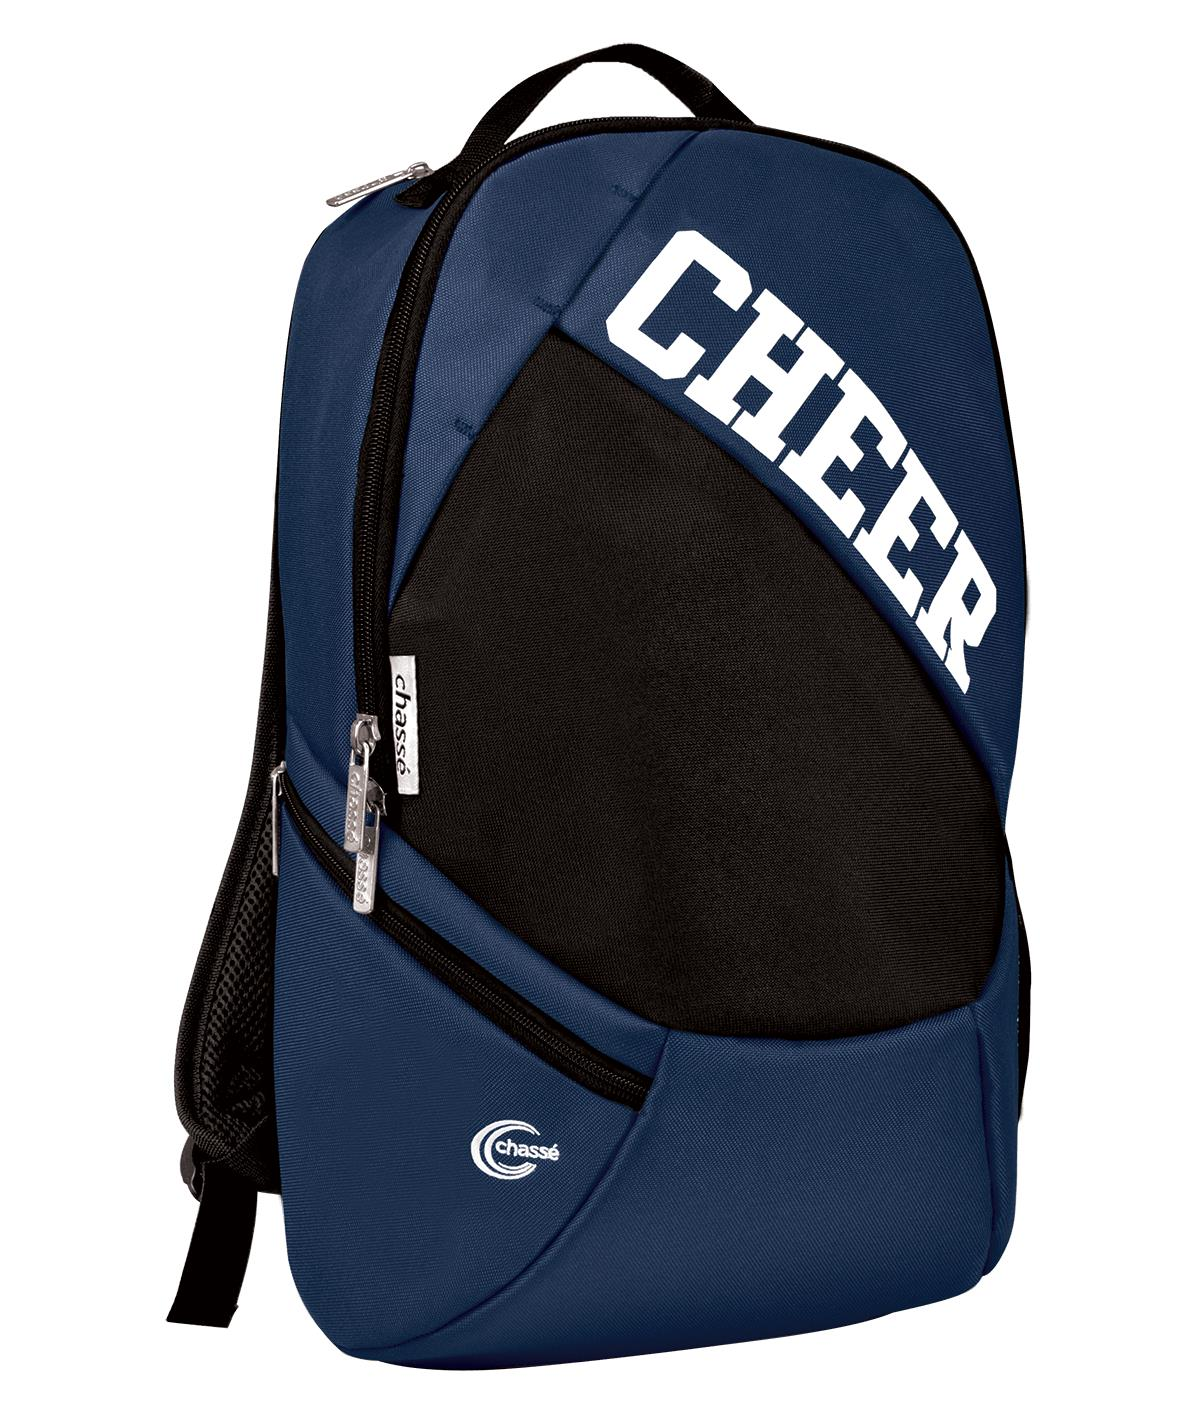 Chassé Explorer Backpack